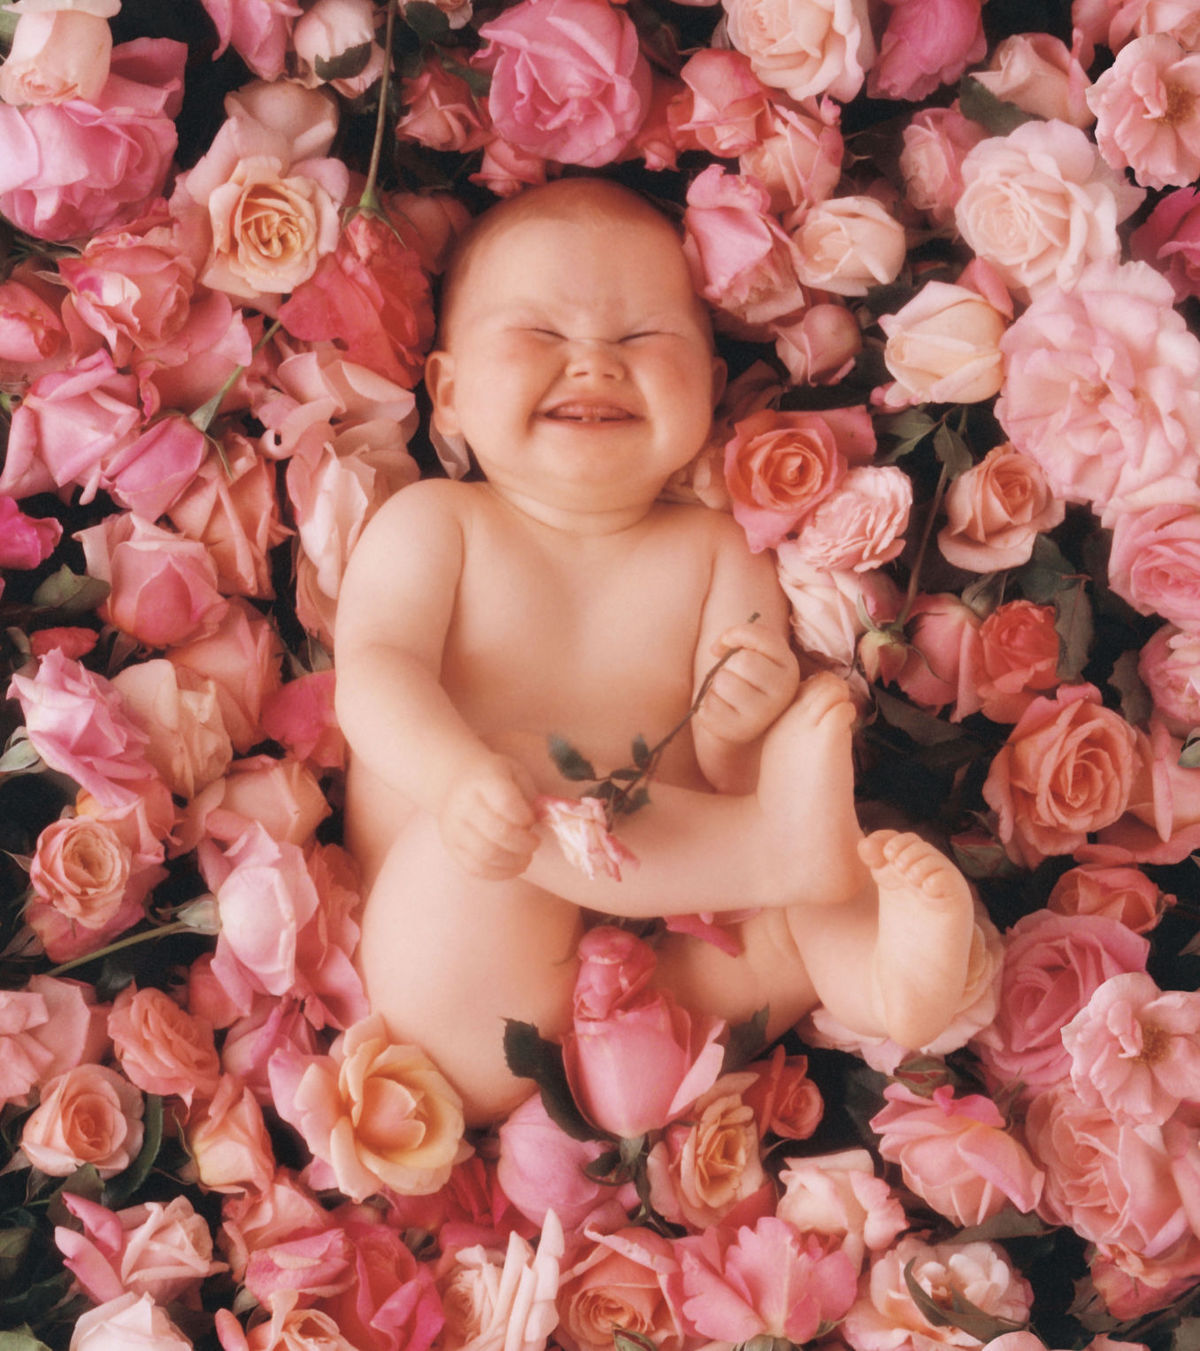 Phillipa on a bed of roses in 1992. Photo by Anne Geddes